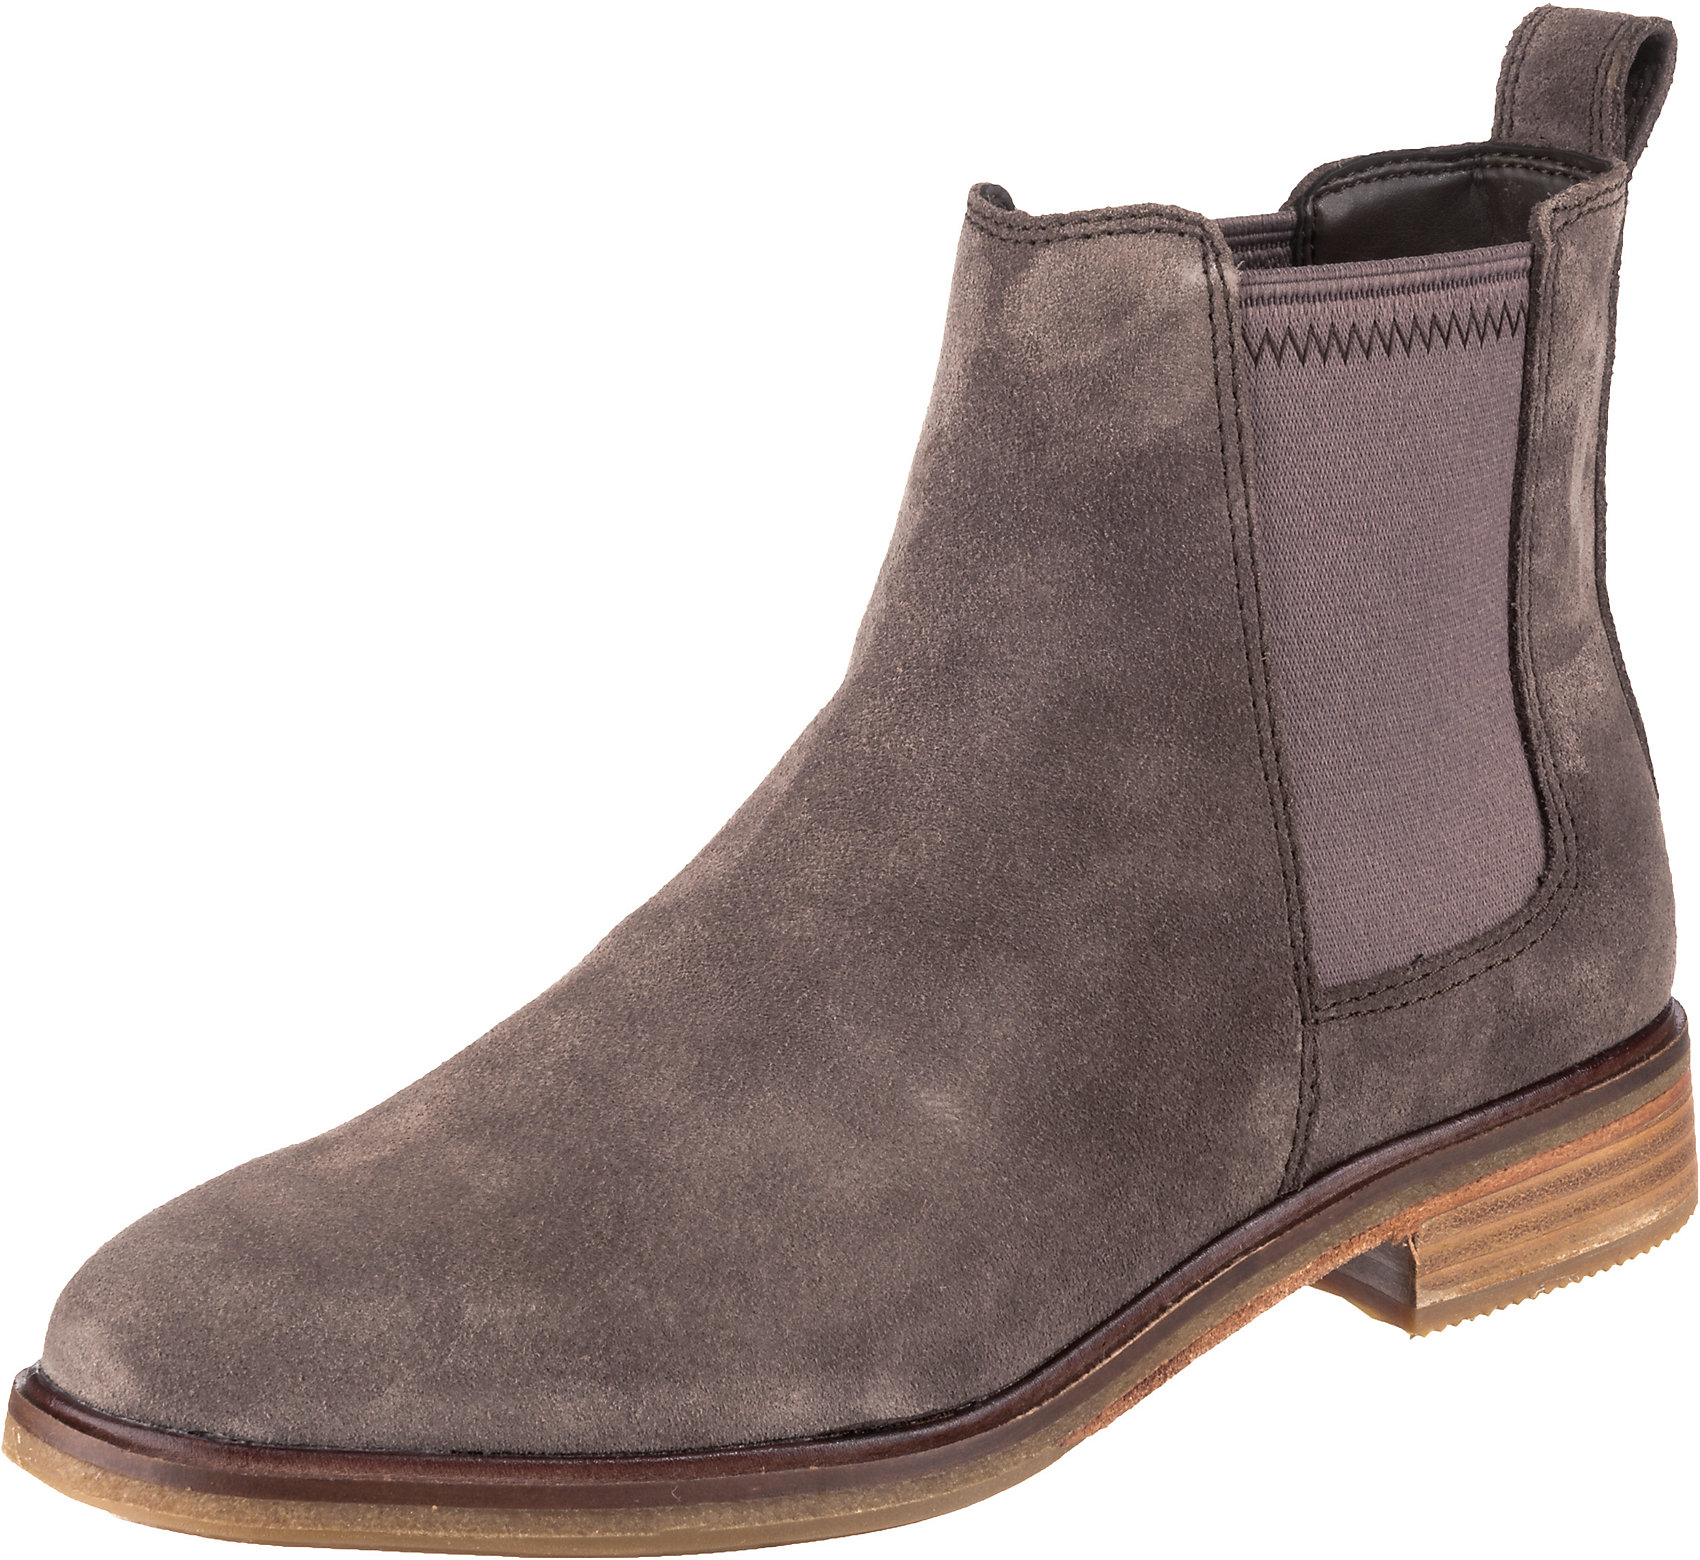 Timberland Women's Magby Chelsea Ankle Boots NIB   eBay